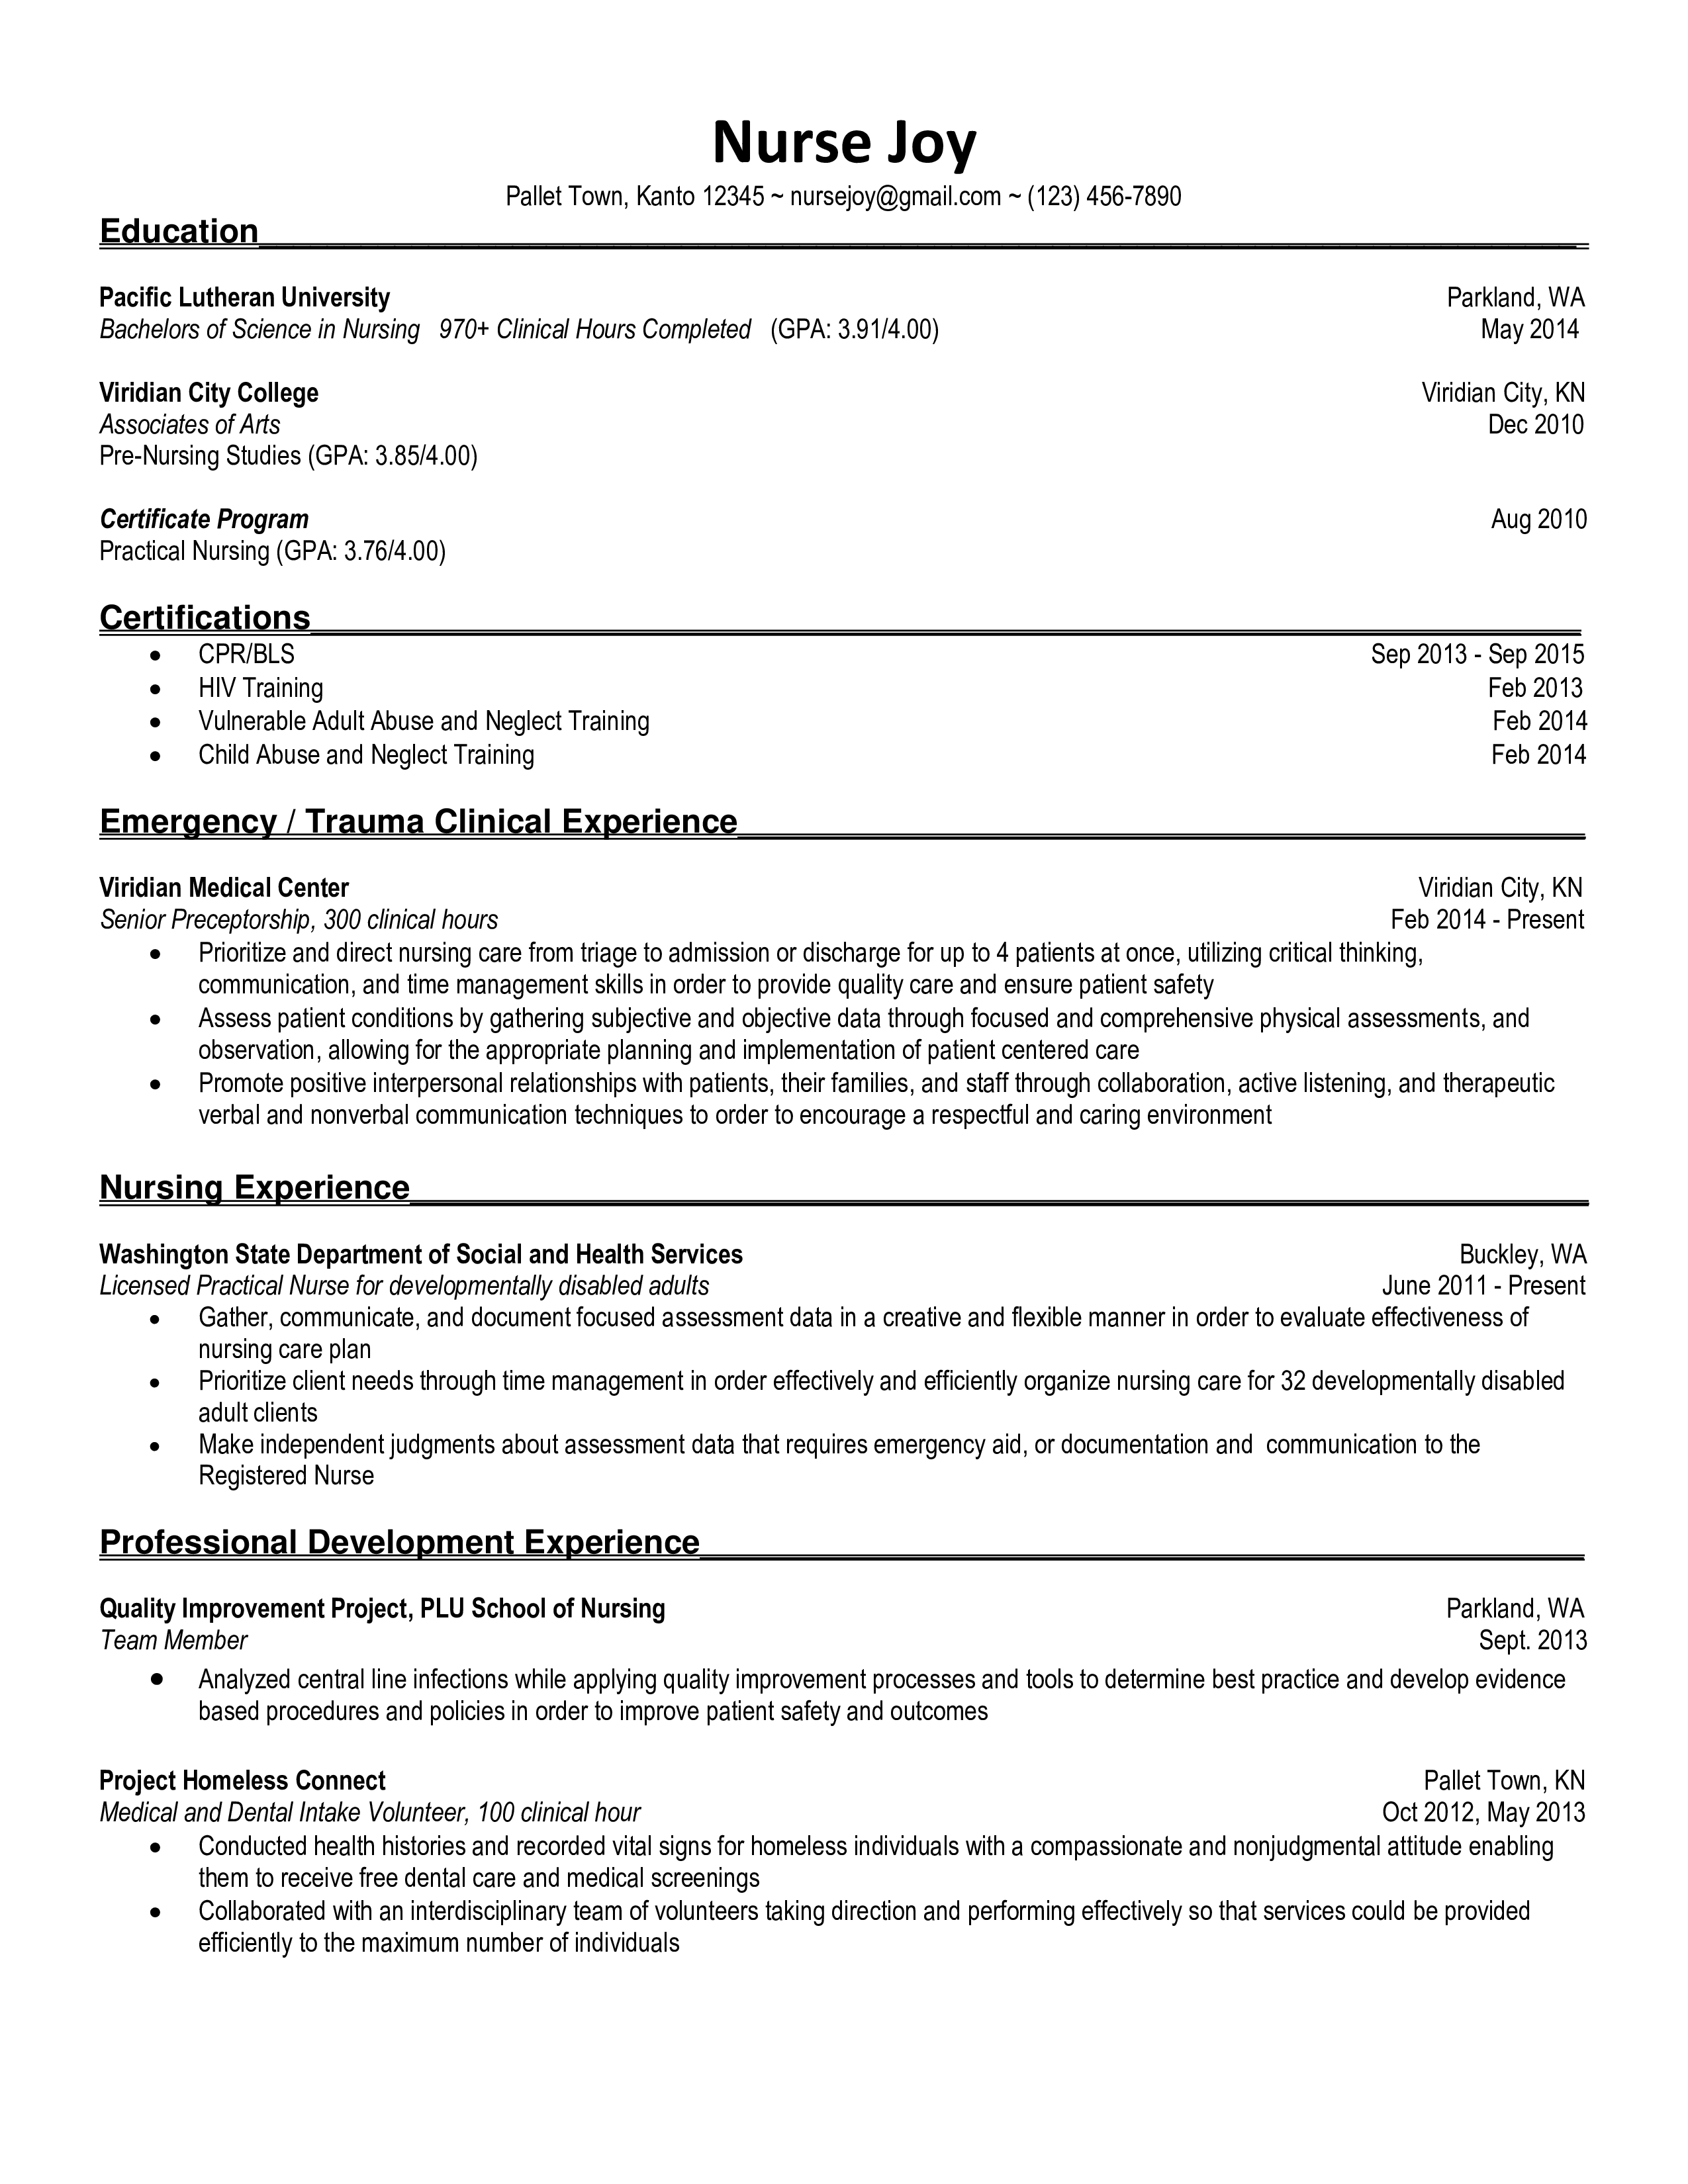 free sample resume for nurse with experience templates at